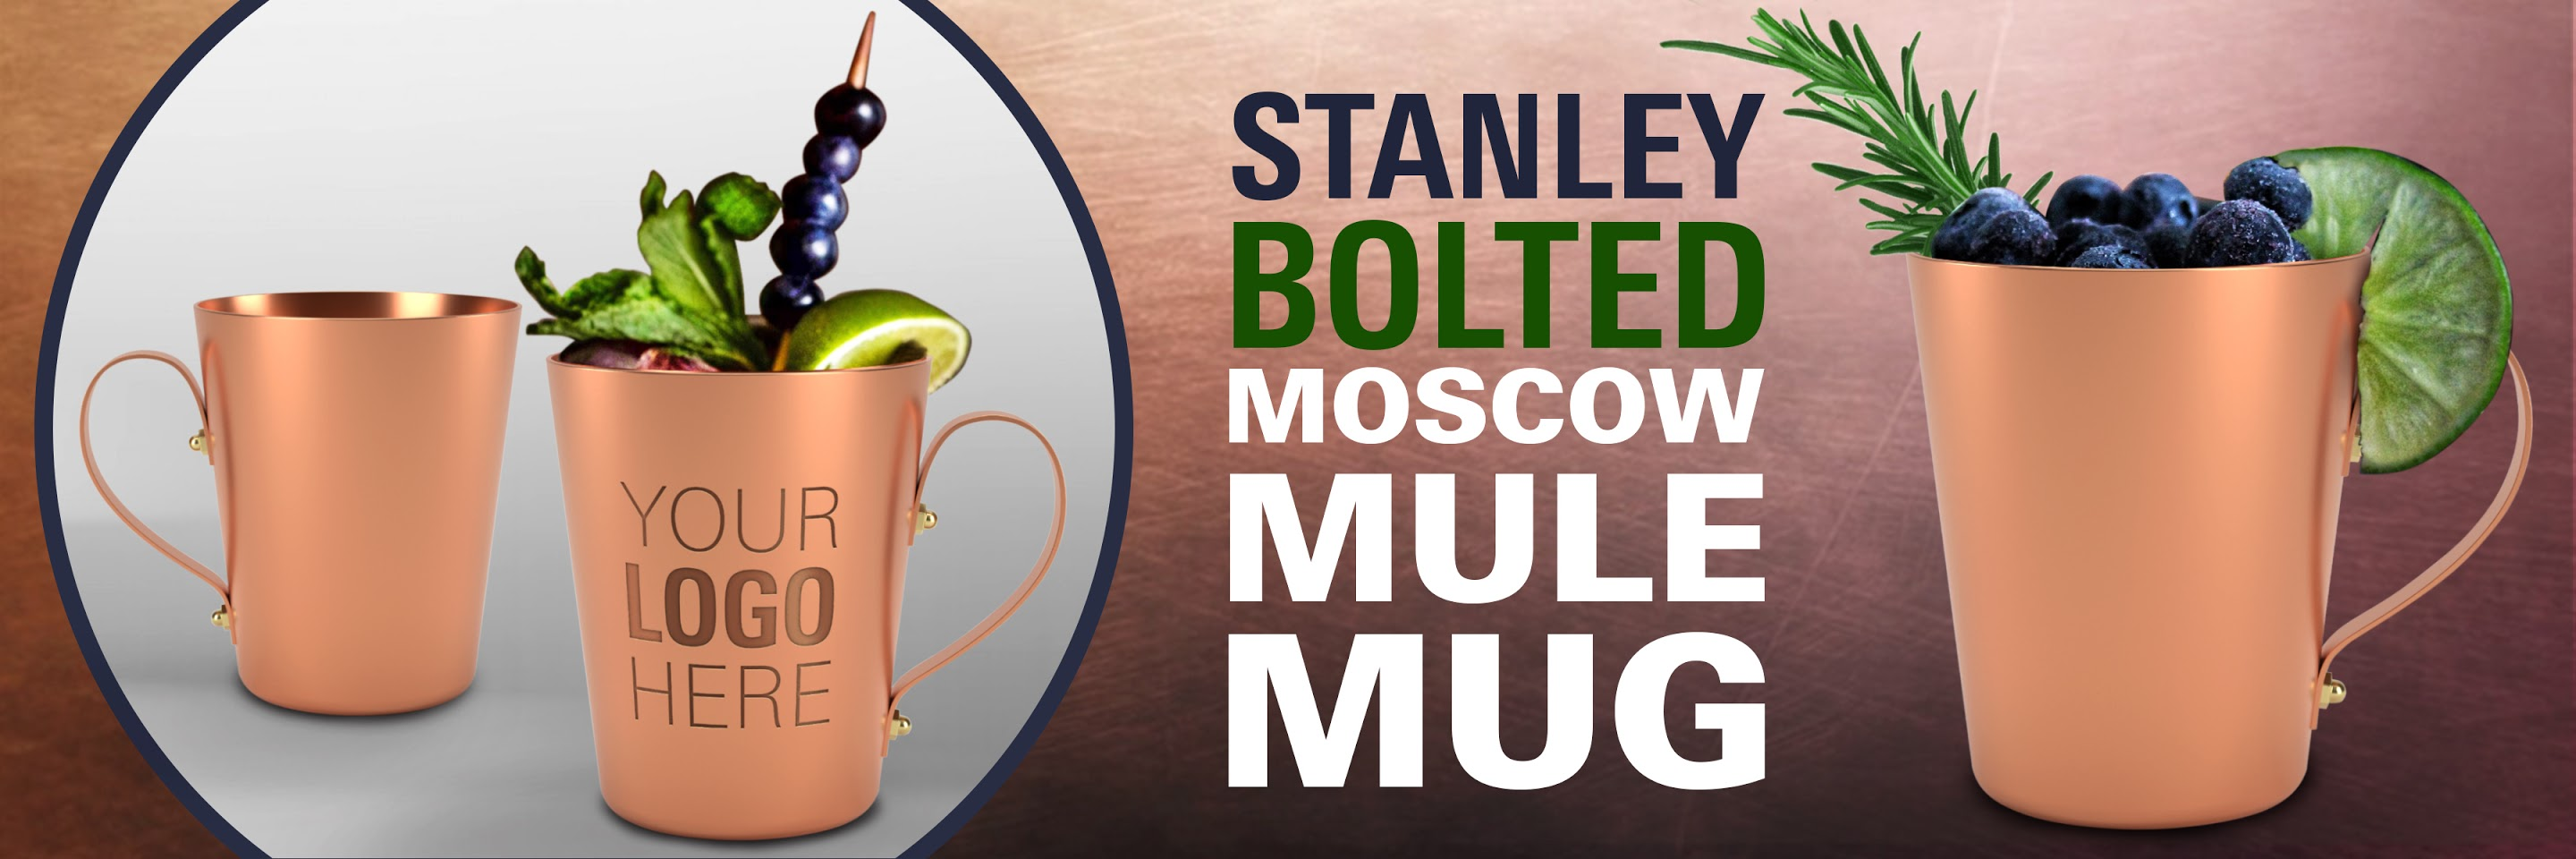 Stanley Bolted Moscow Mule Mug